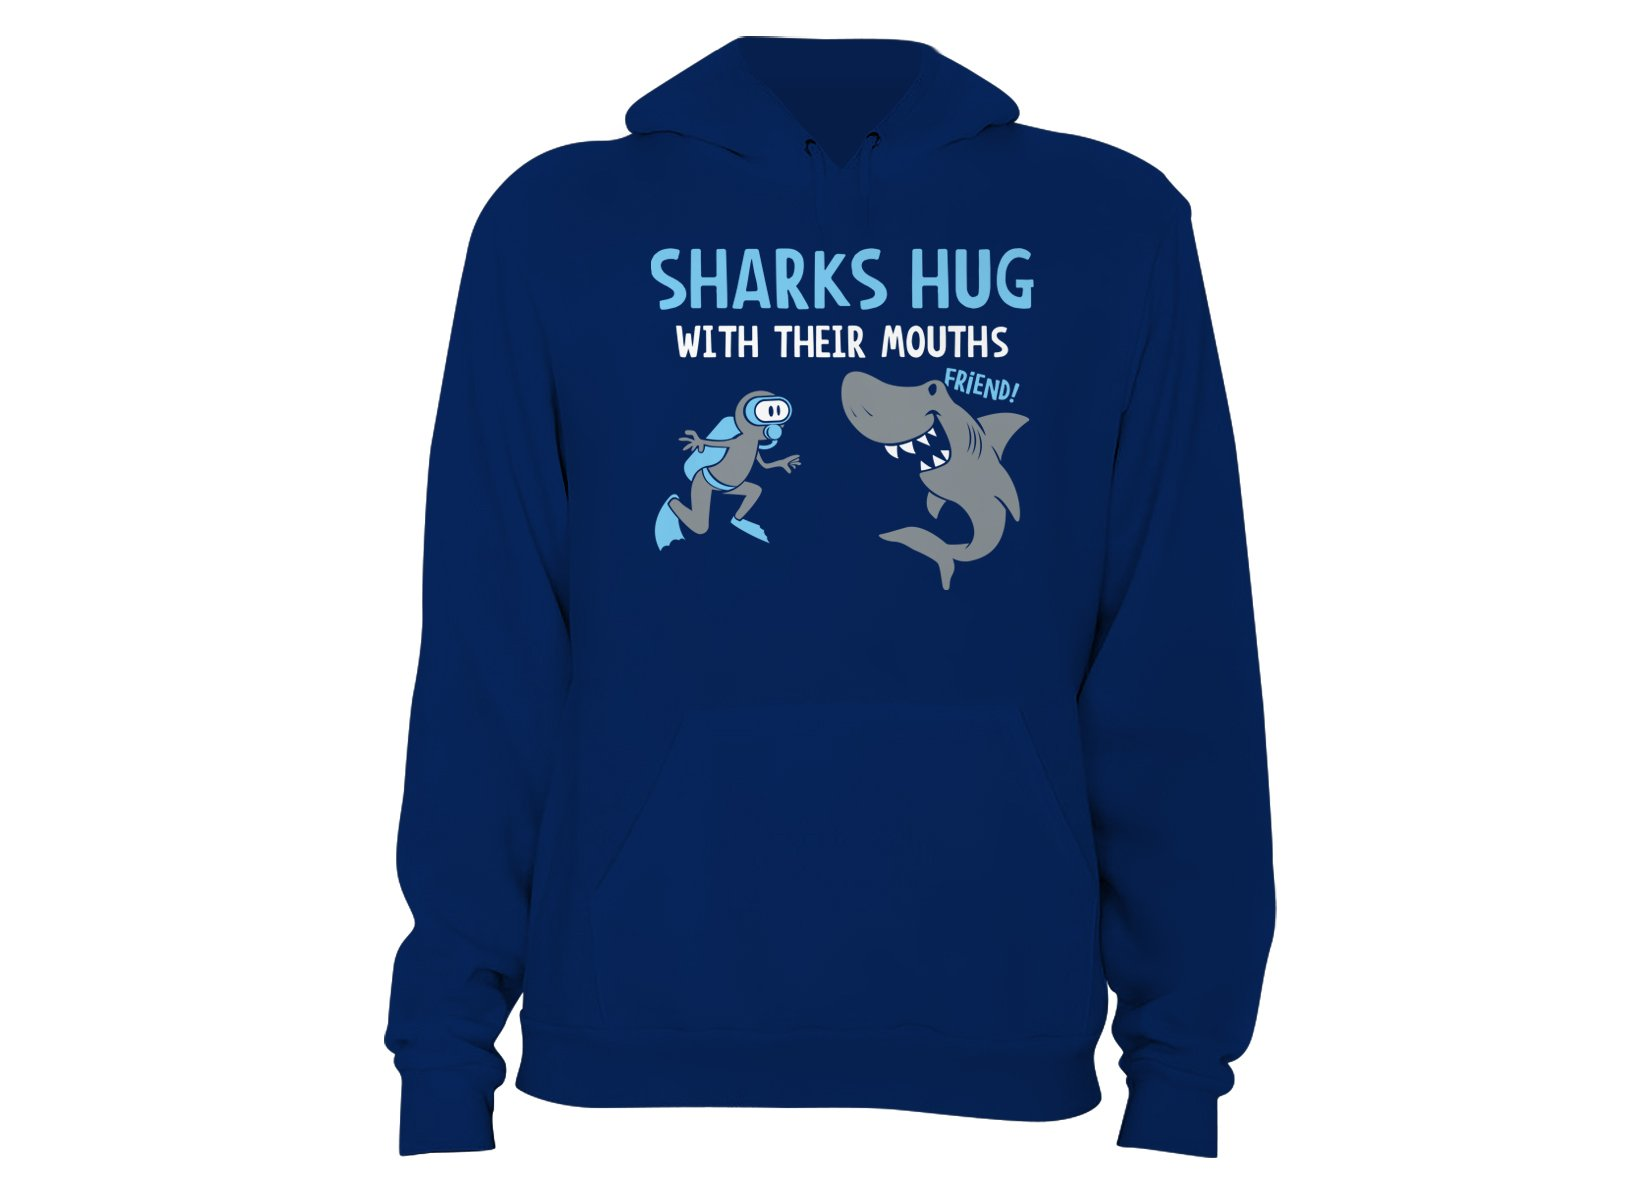 Sharks Hug With Their Mouths on Hoodie